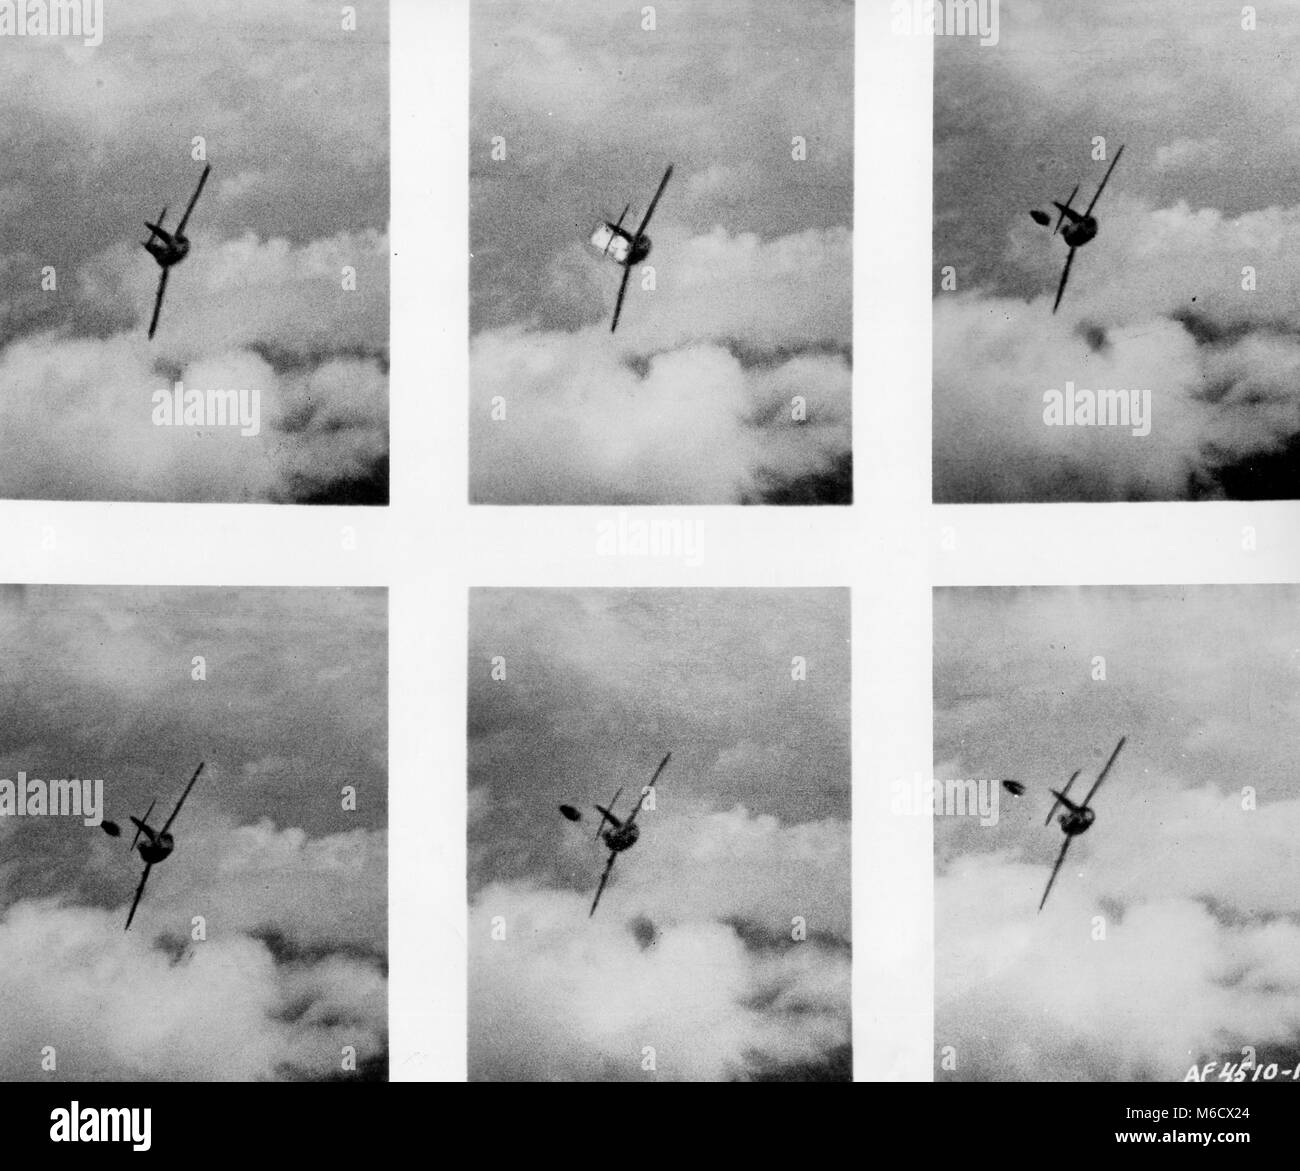 Photos, taken by the gun camera of a U.S. Air Force F-86 flown by 2nd Lt. Edwin E. 'Buzz' Aldrin, show a - Stock Image